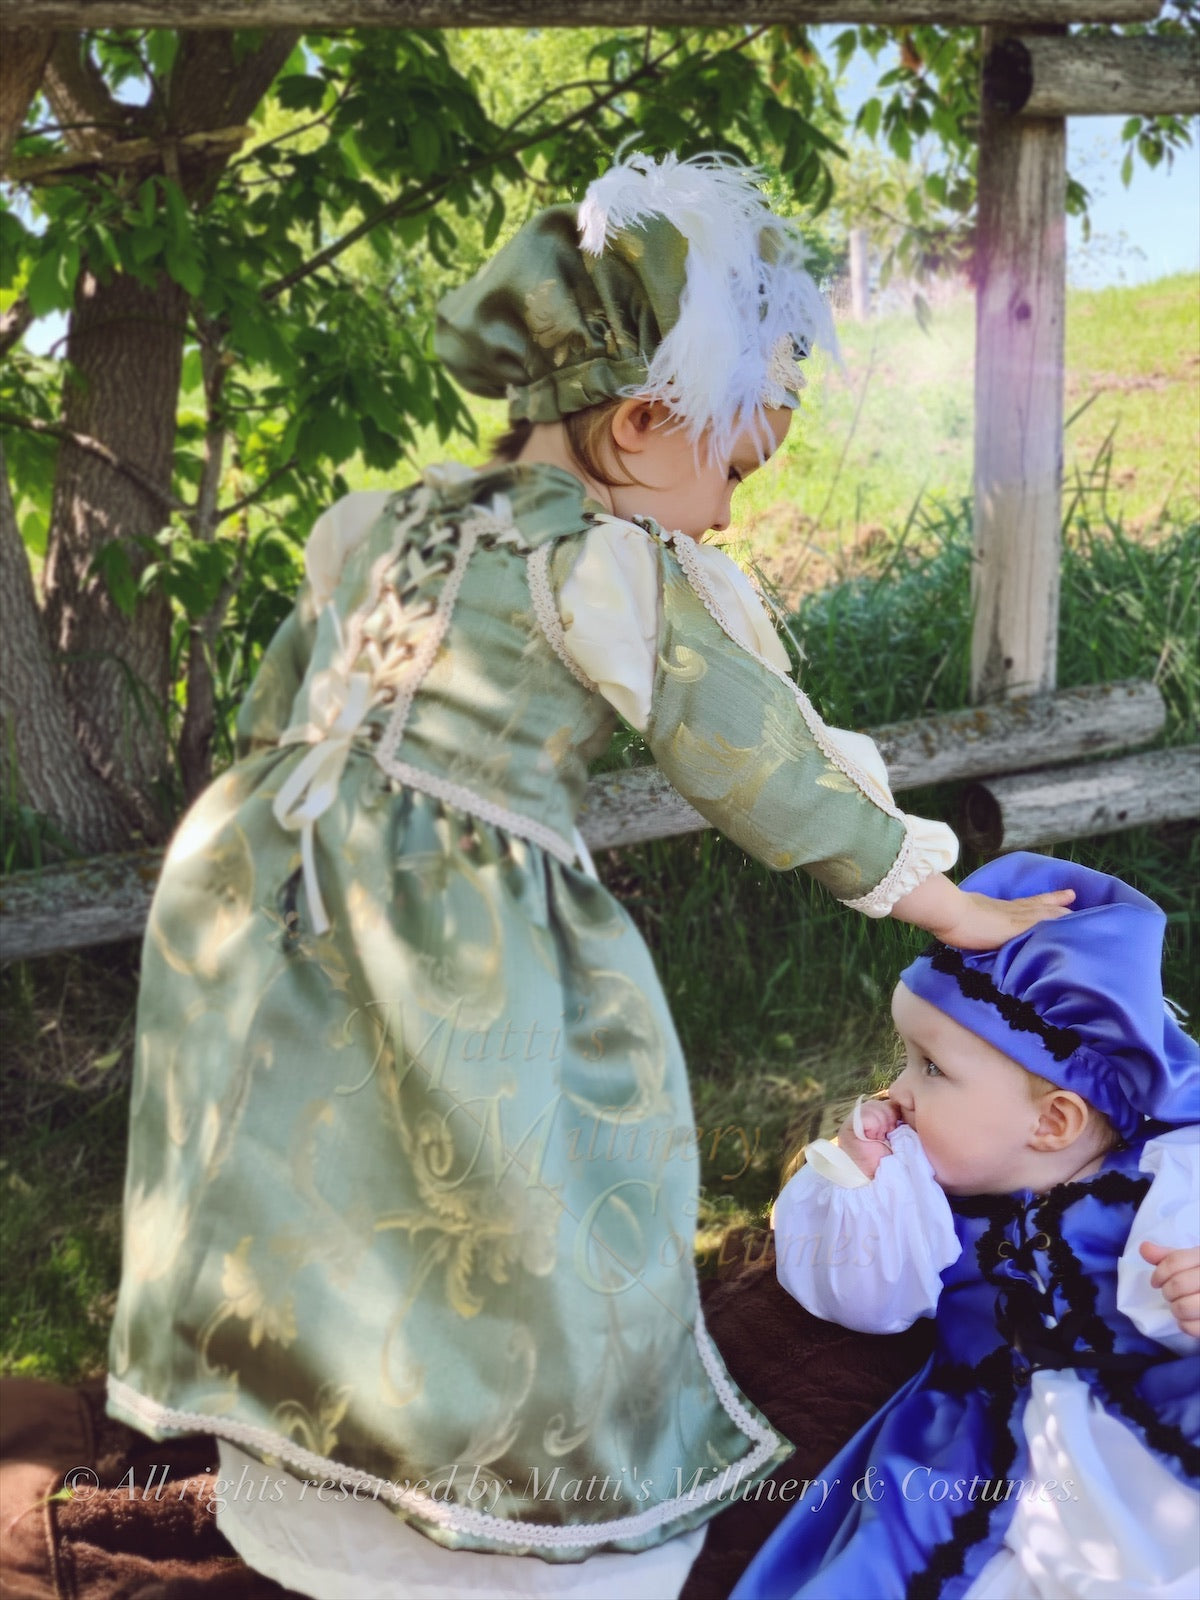 Childrens Renaissance Lil' Ren Medieval Renaissance Court Outfit with chemise, overdress and muffin cap CUSTOM size and color